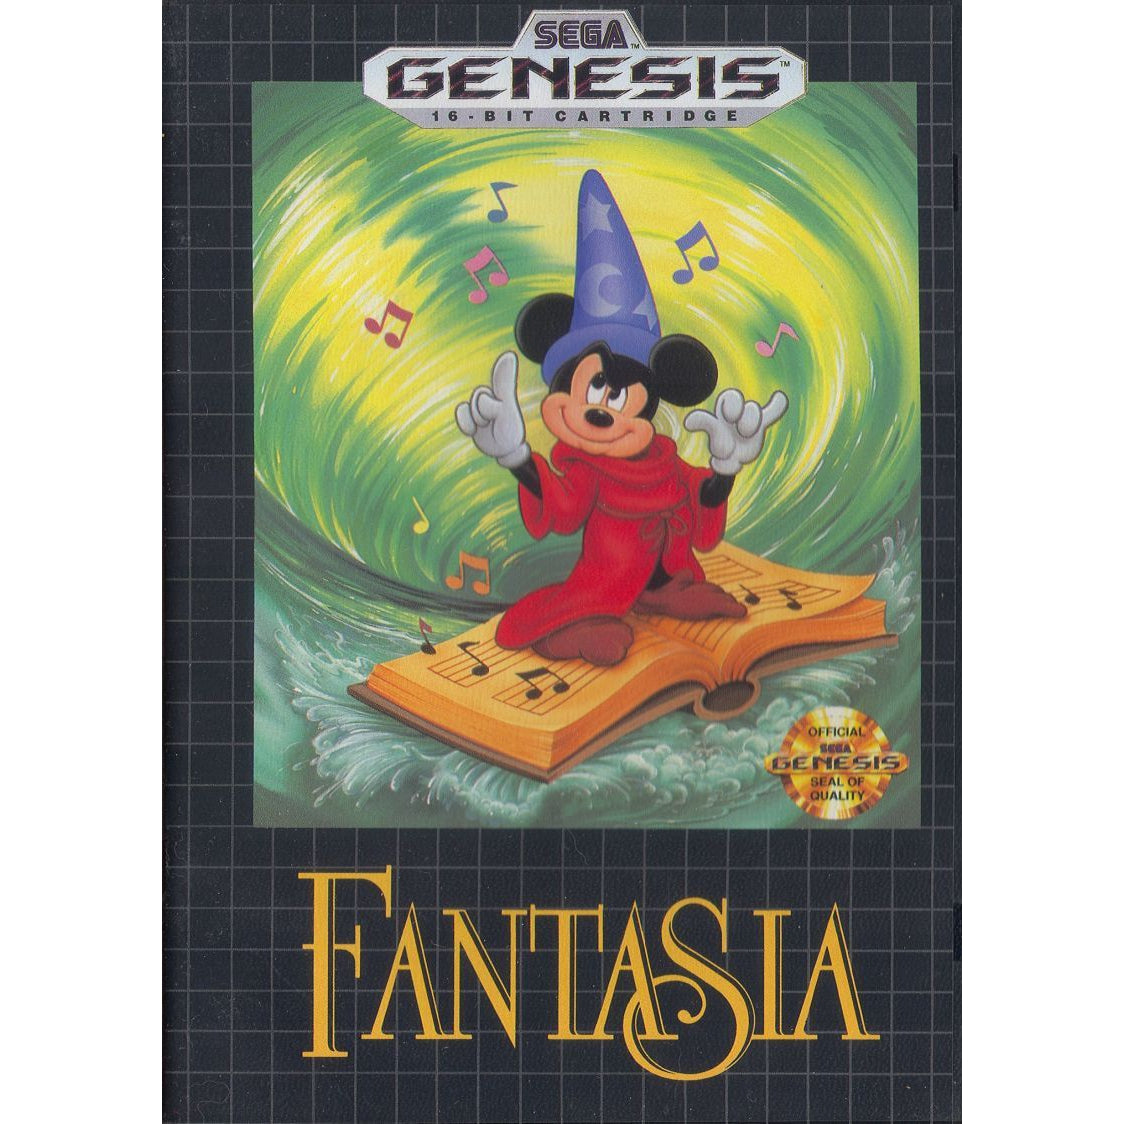 Fantasia - Sega Genesis Game Complete - YourGamingShop.com - Buy, Sell, Trade Video Games Online. 120 Day Warranty. Satisfaction Guaranteed.